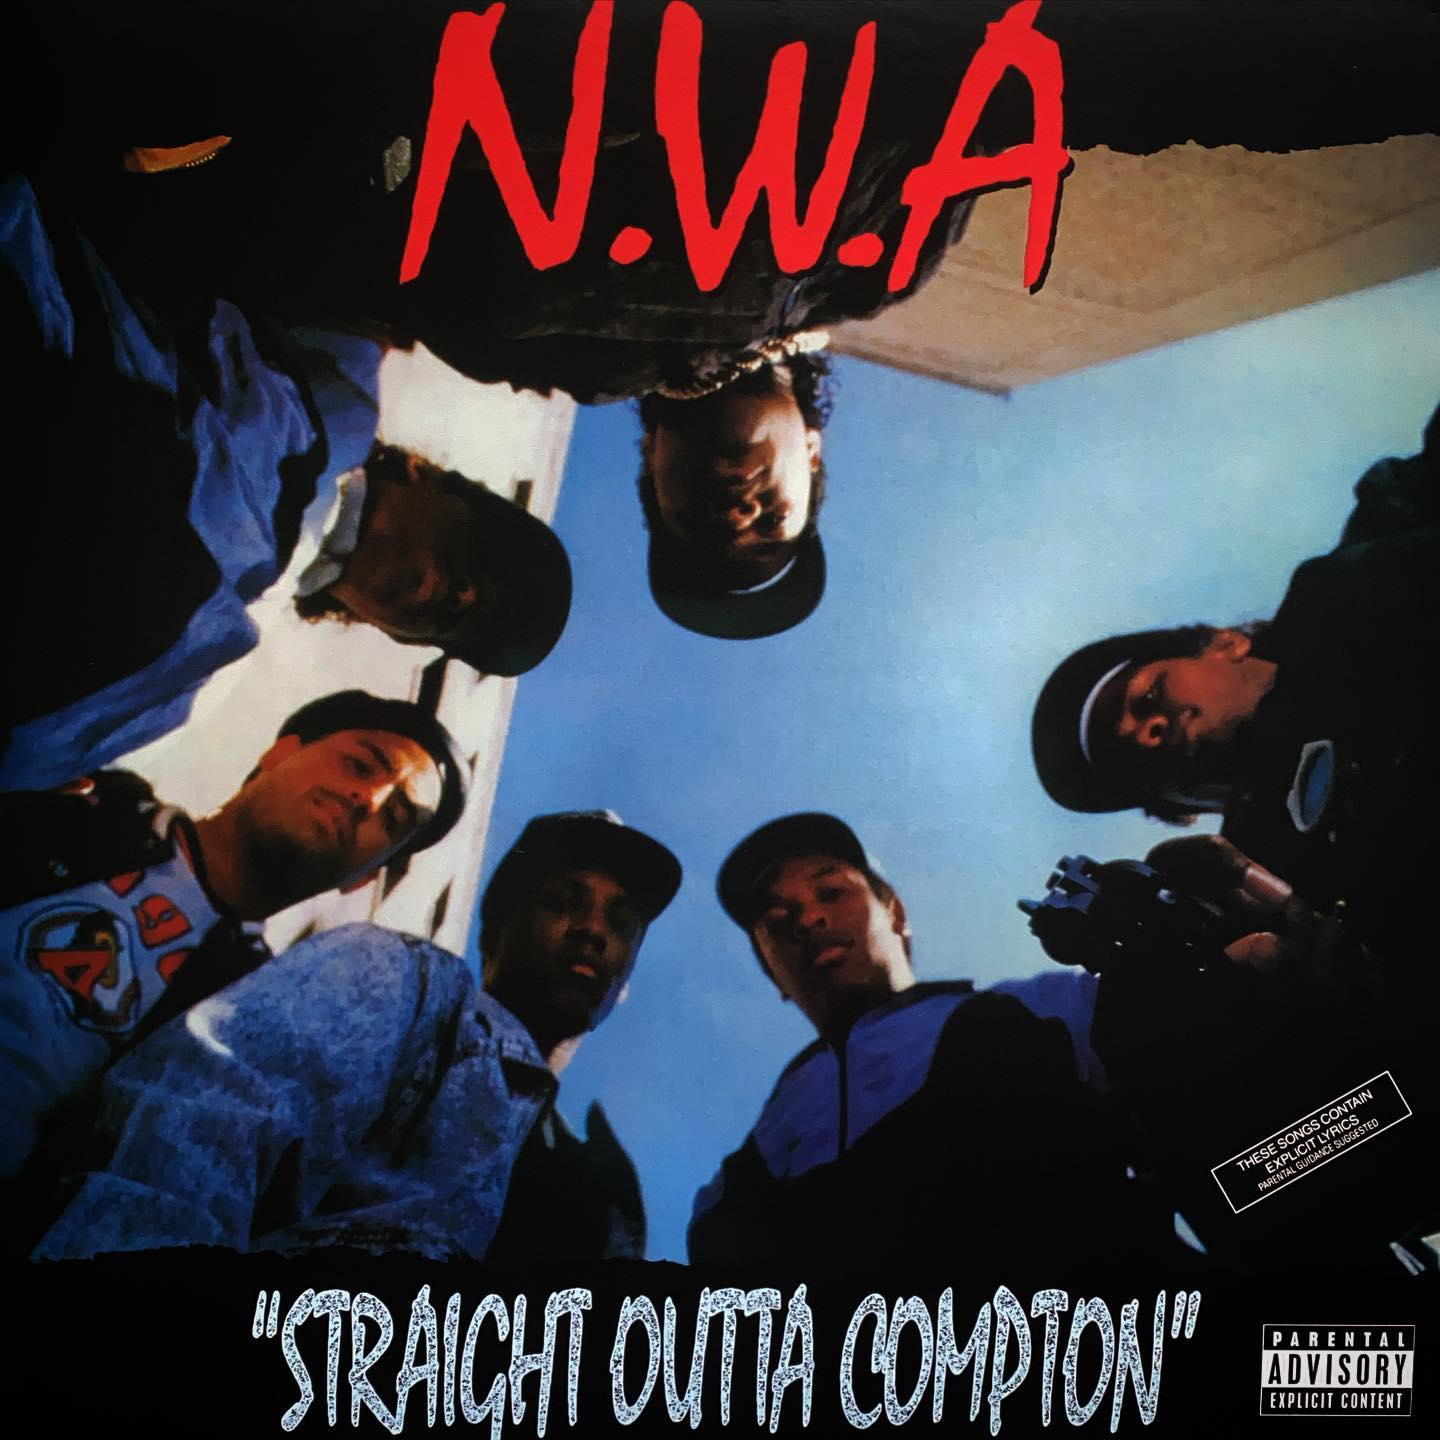 N.W.A. - Straight Outta Compton #anotherclassic #vinyl #nowspinning